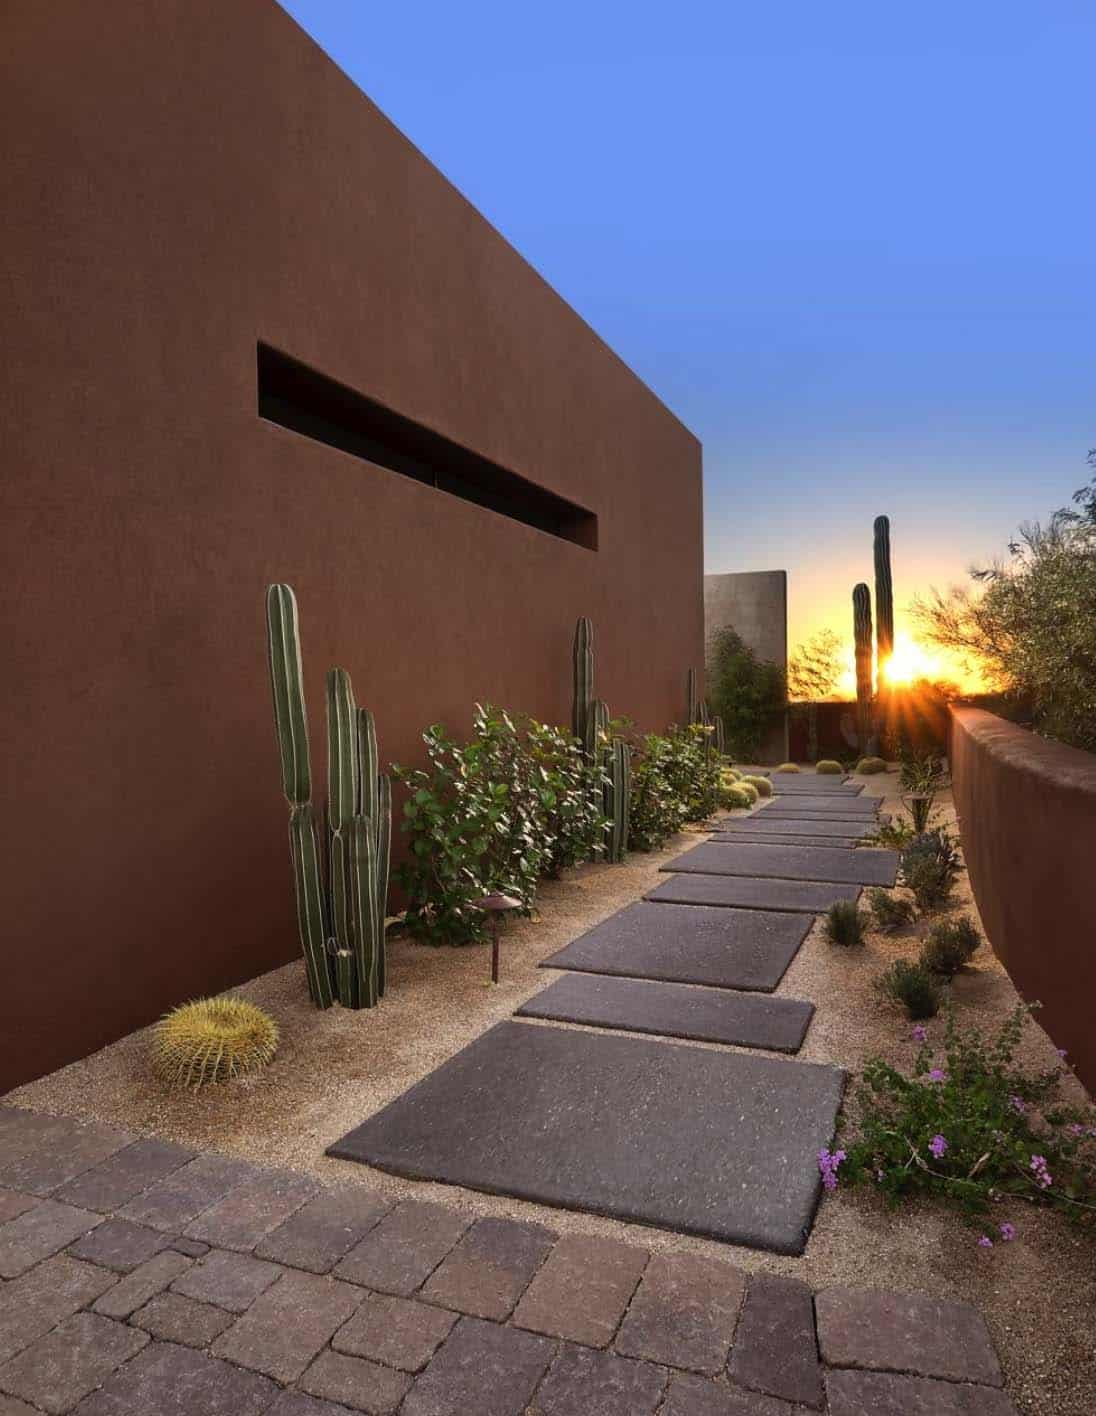 Contemporary Desert Home-Tate Studio Architects-04-1 Kindesign